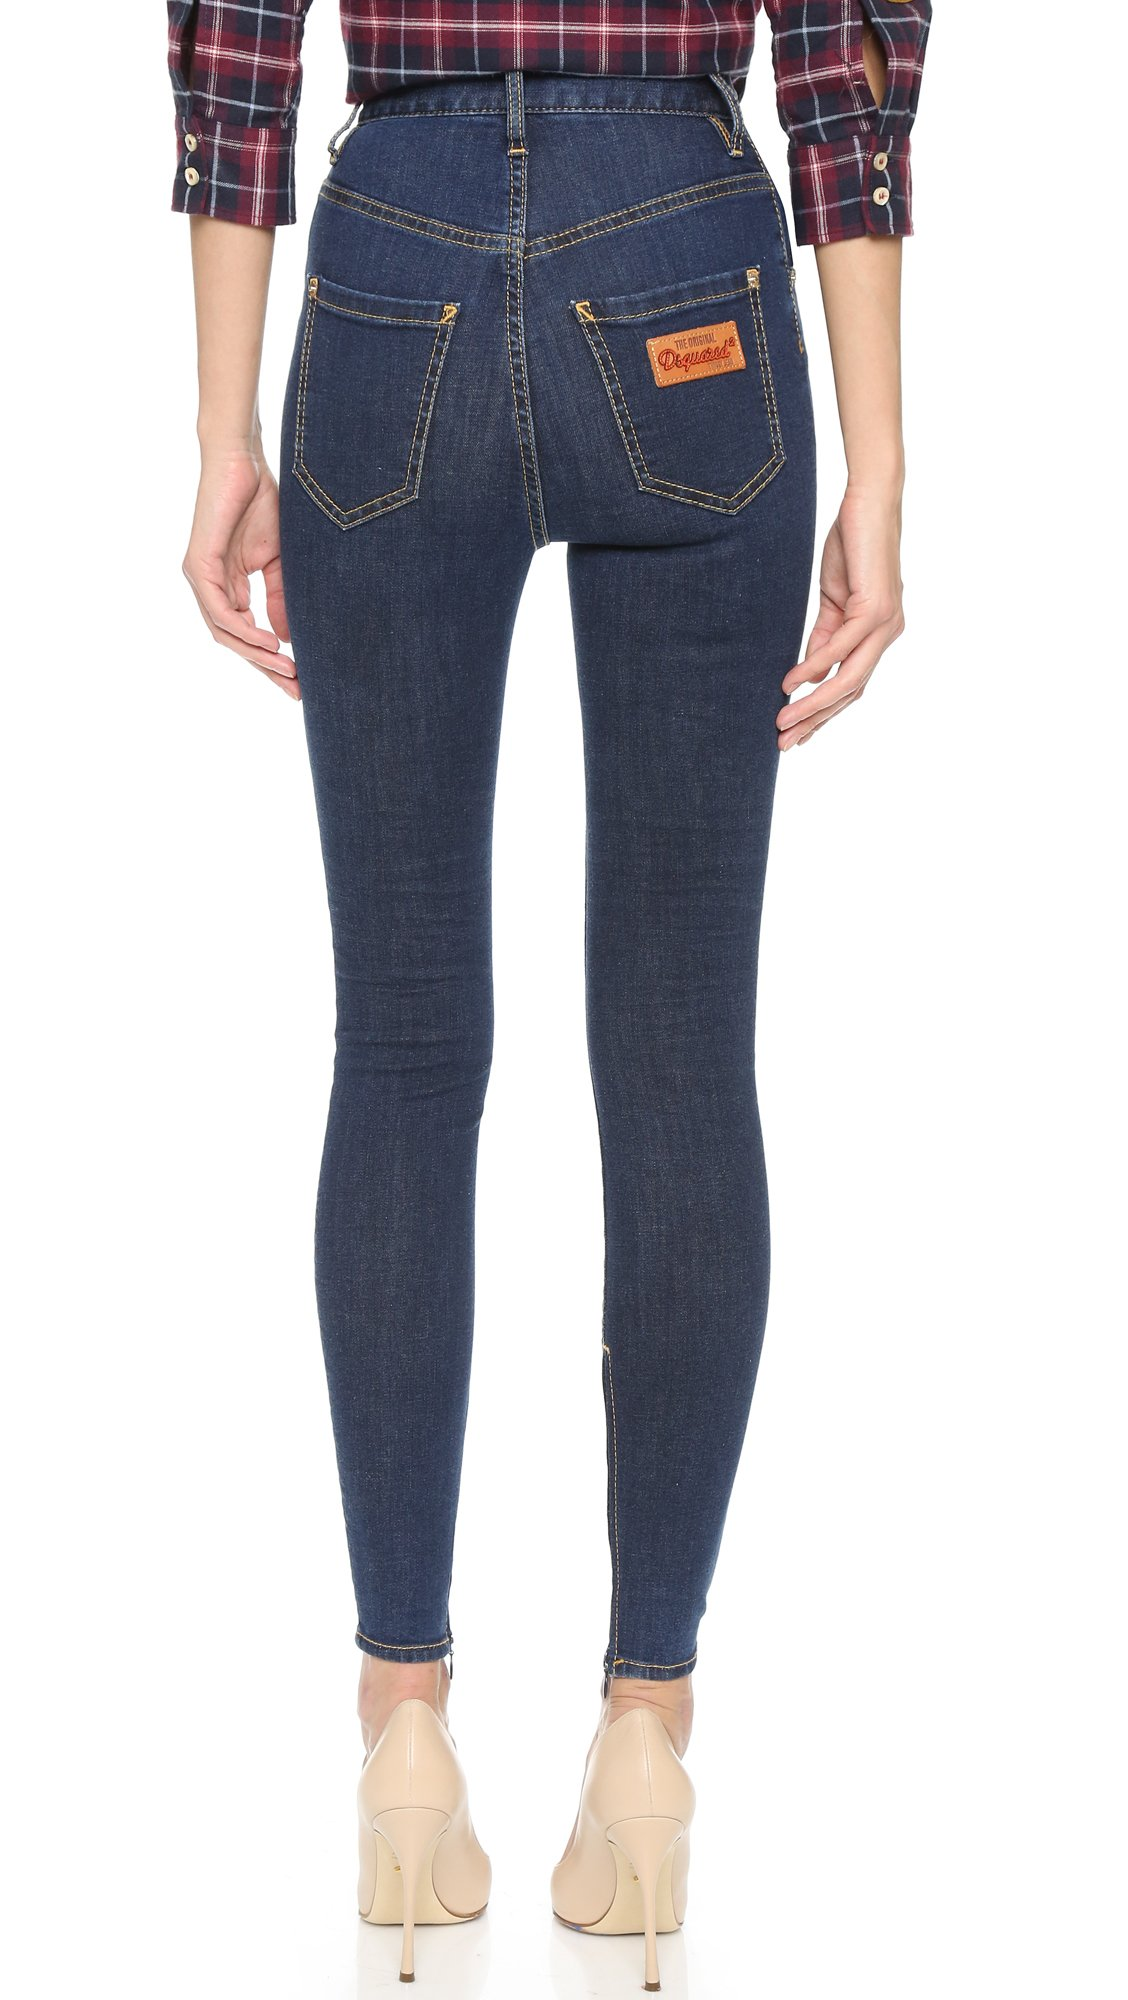 high waisted twiggy jeans - Blue Dsquared2 Discount Top Quality CdWnb